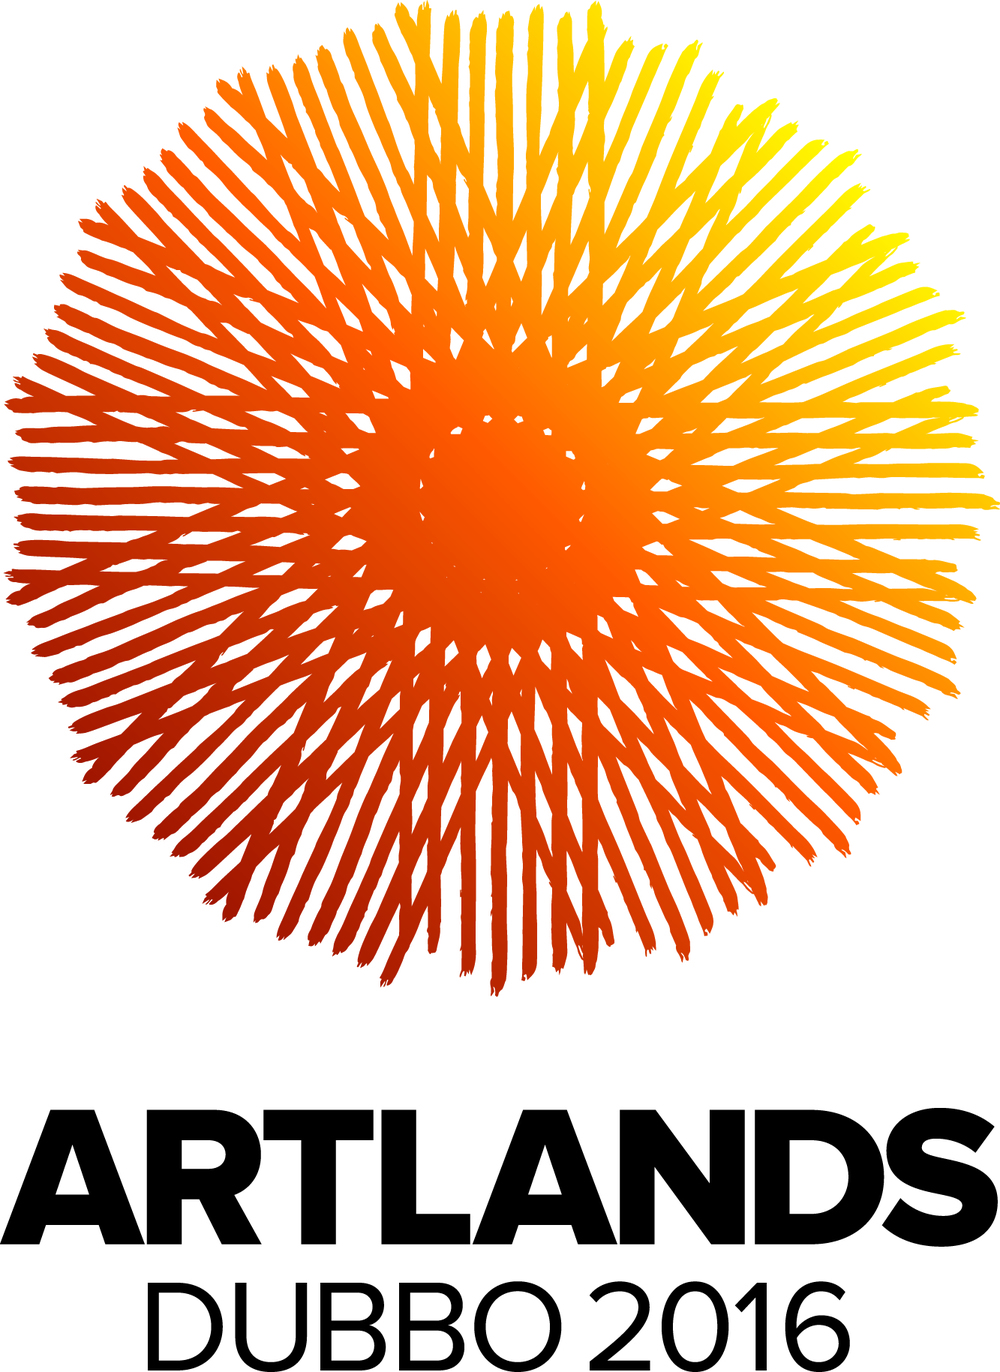 artlands_stacked_yellow.jpg